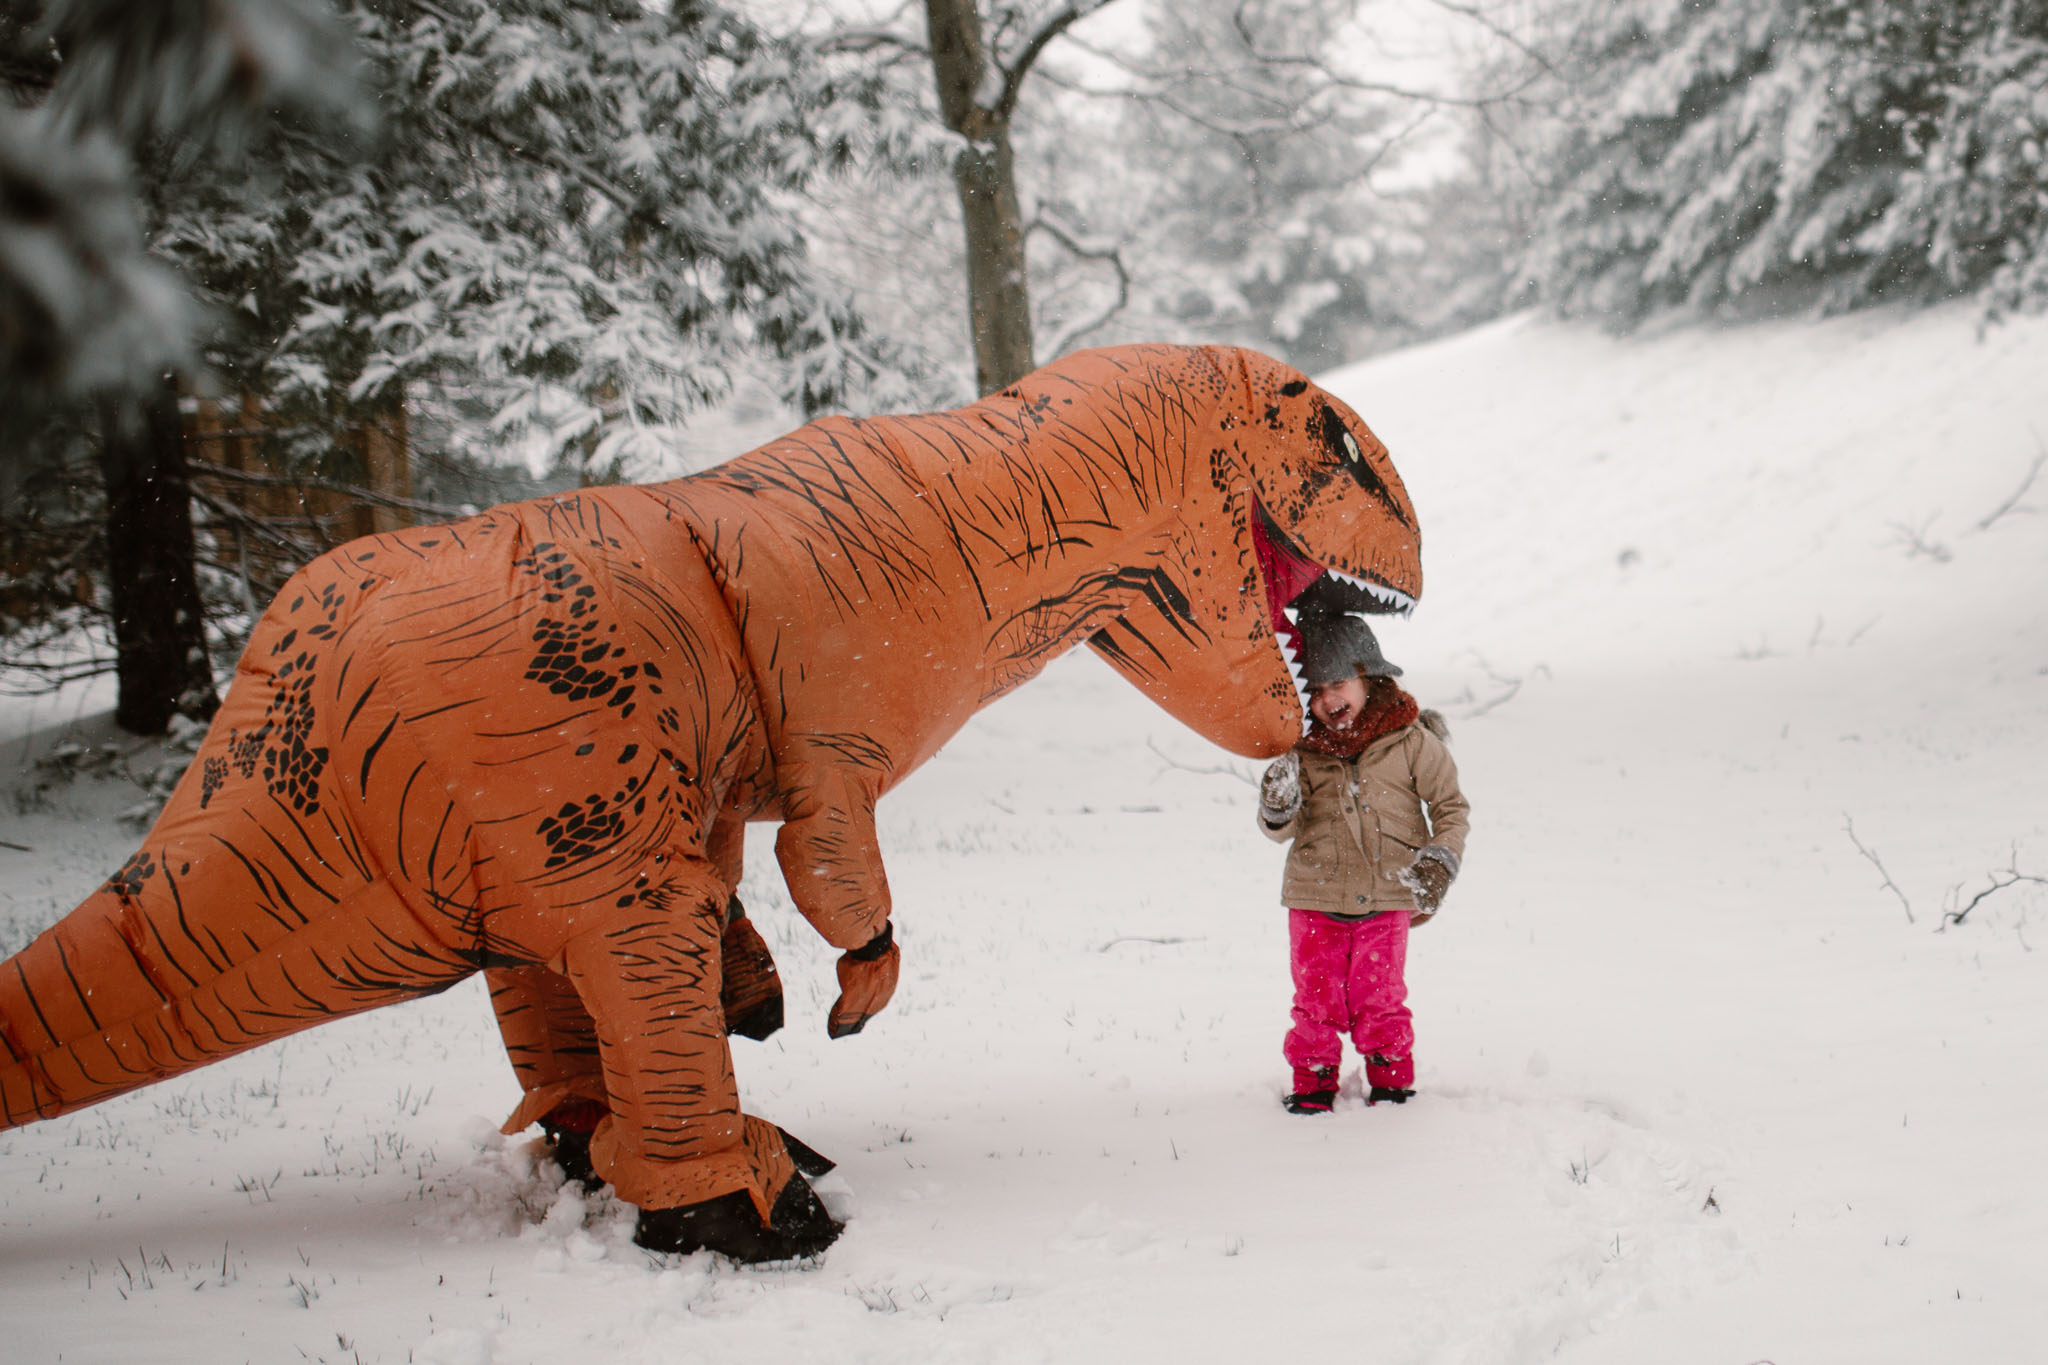 An orange dinosaur pretends to eat a toddler while they play outside in the snow